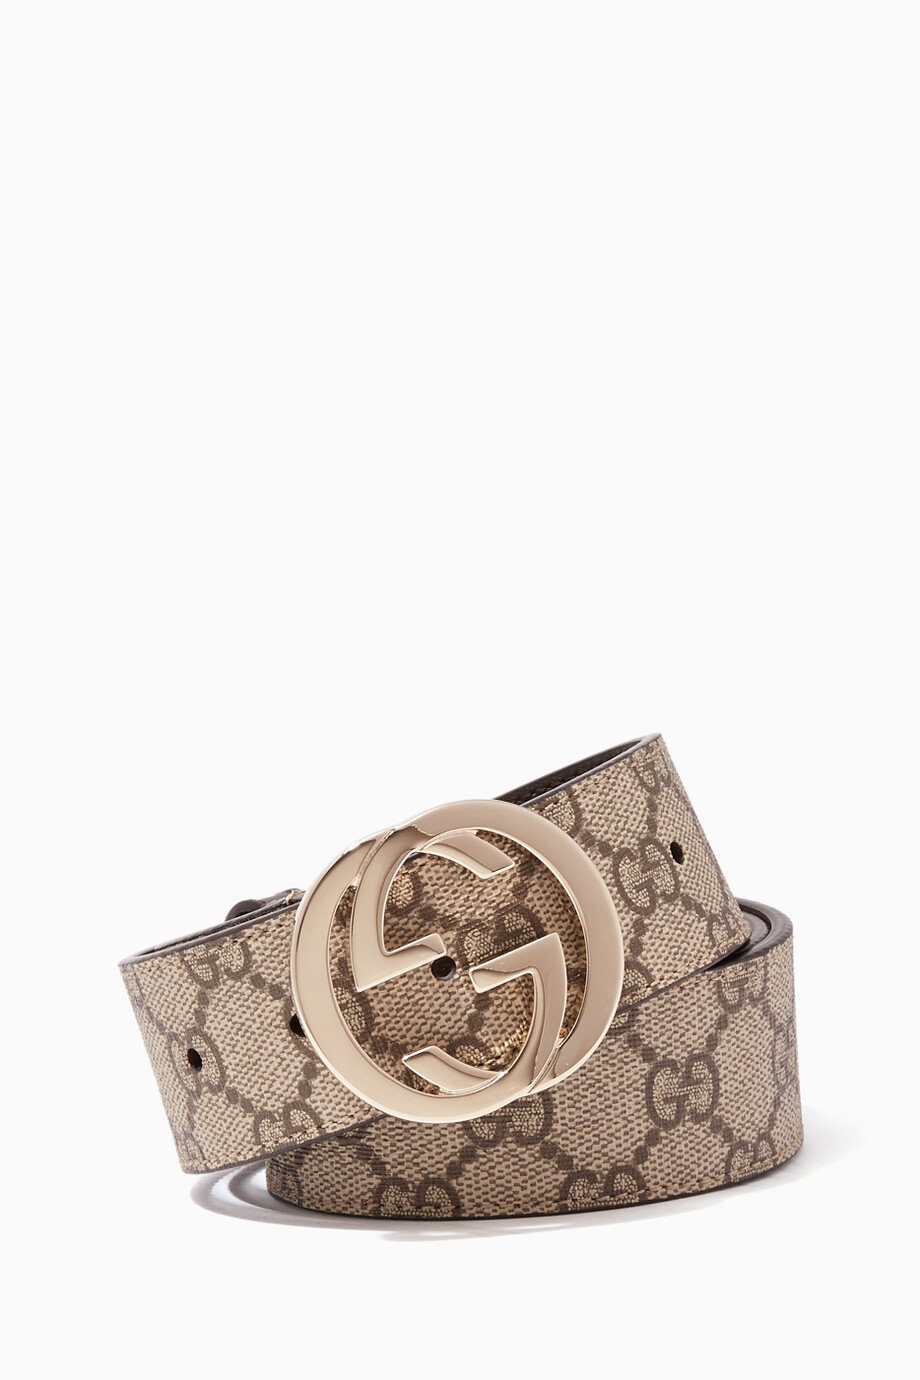 a13149ebaef Shop Gucci Neutral Beige   Ebony GG Supreme Belt for Women